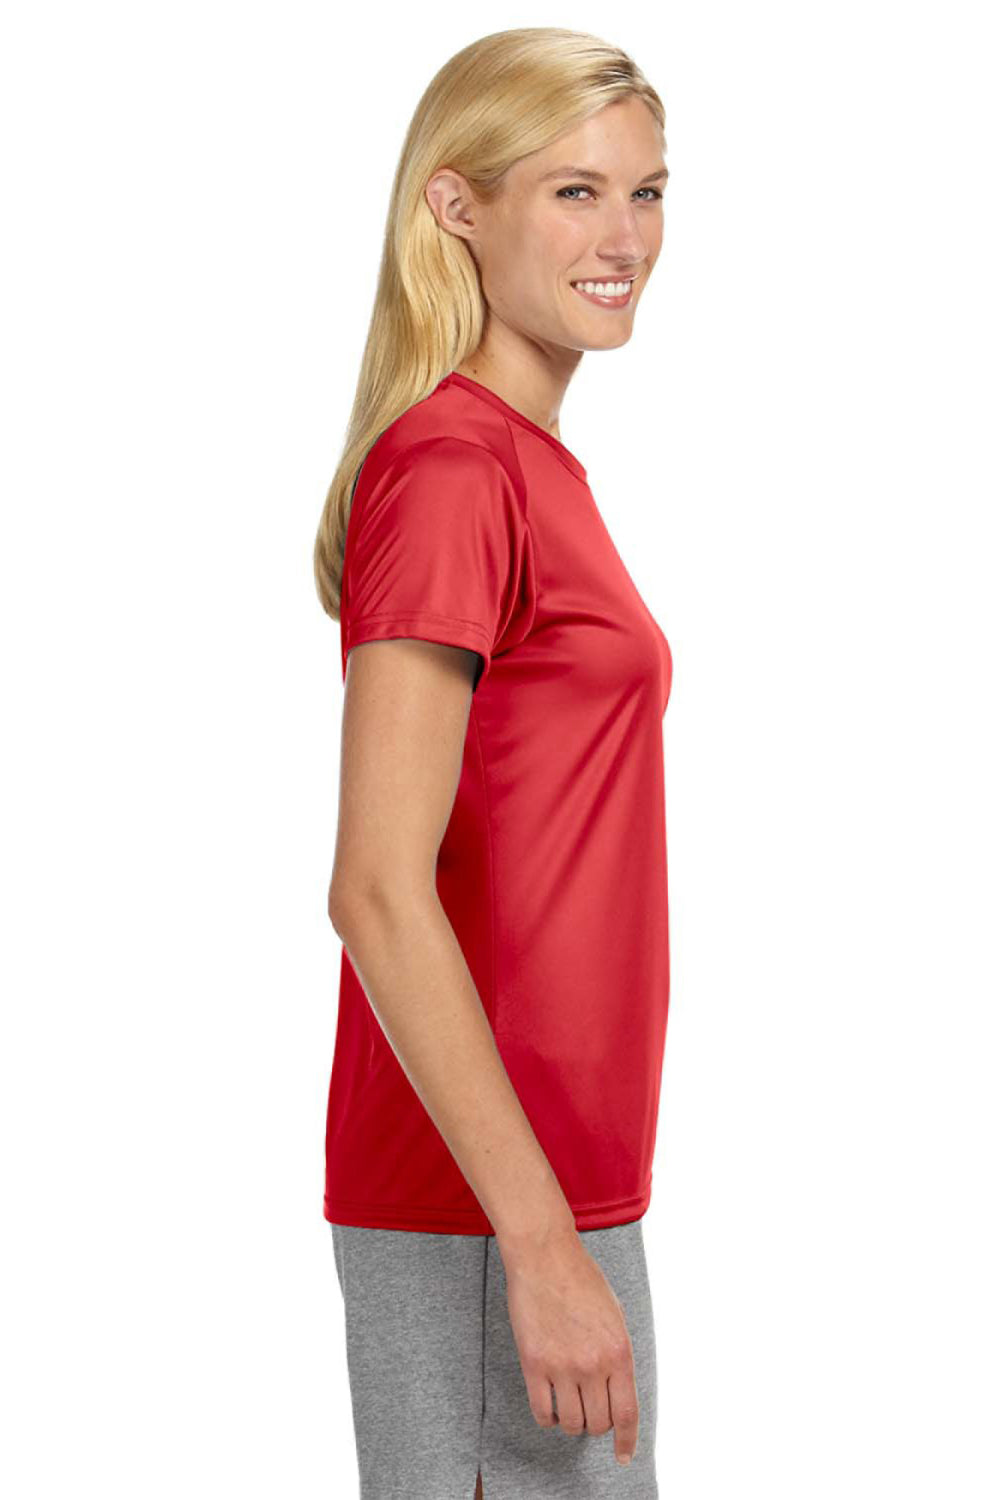 A4 NW3201 Womens Cooling Performance Moisture Wicking Short Sleeve Crewneck T-Shirt Red Side